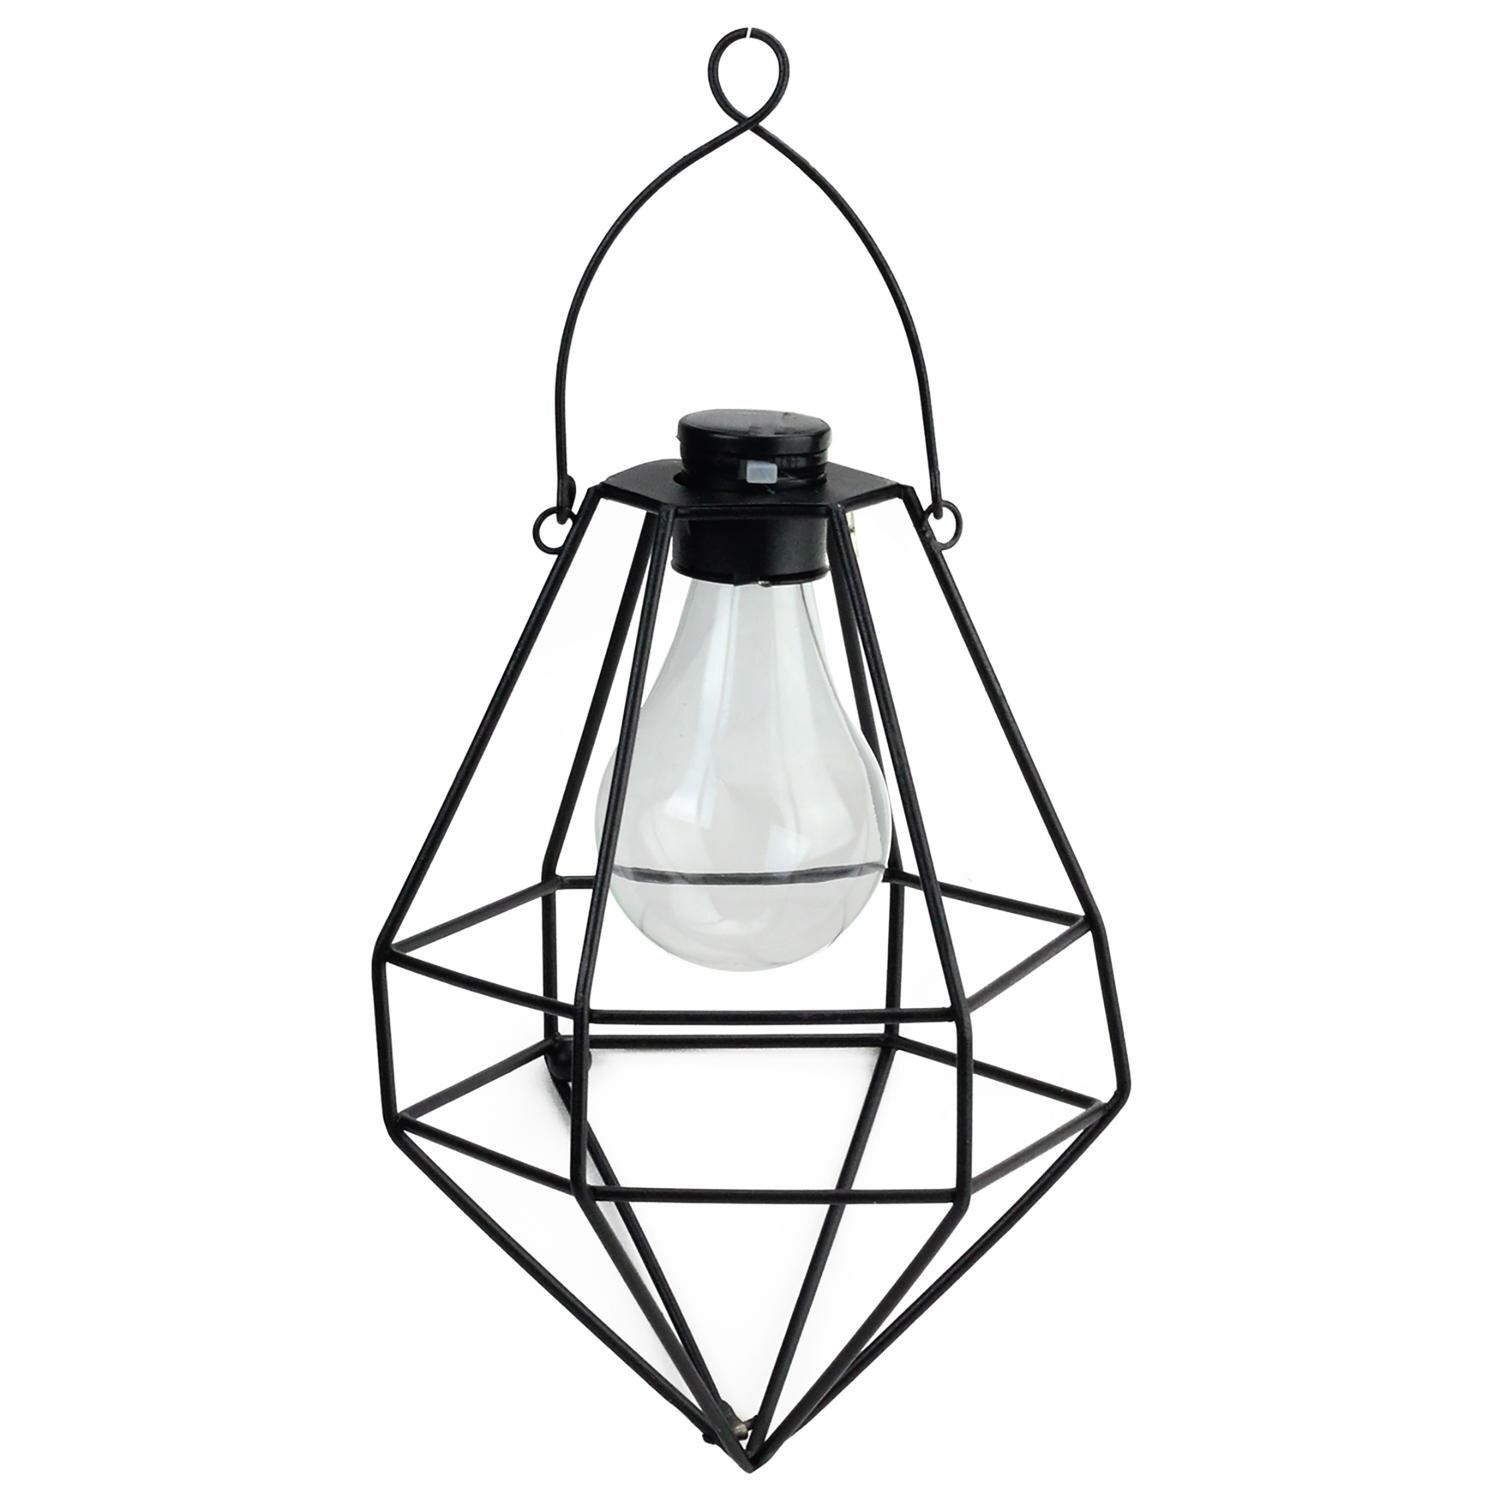 Williston Forge Wilson Diamond Solar Ed 1 Light Led Outdoor Hanging Lantern Wayfair